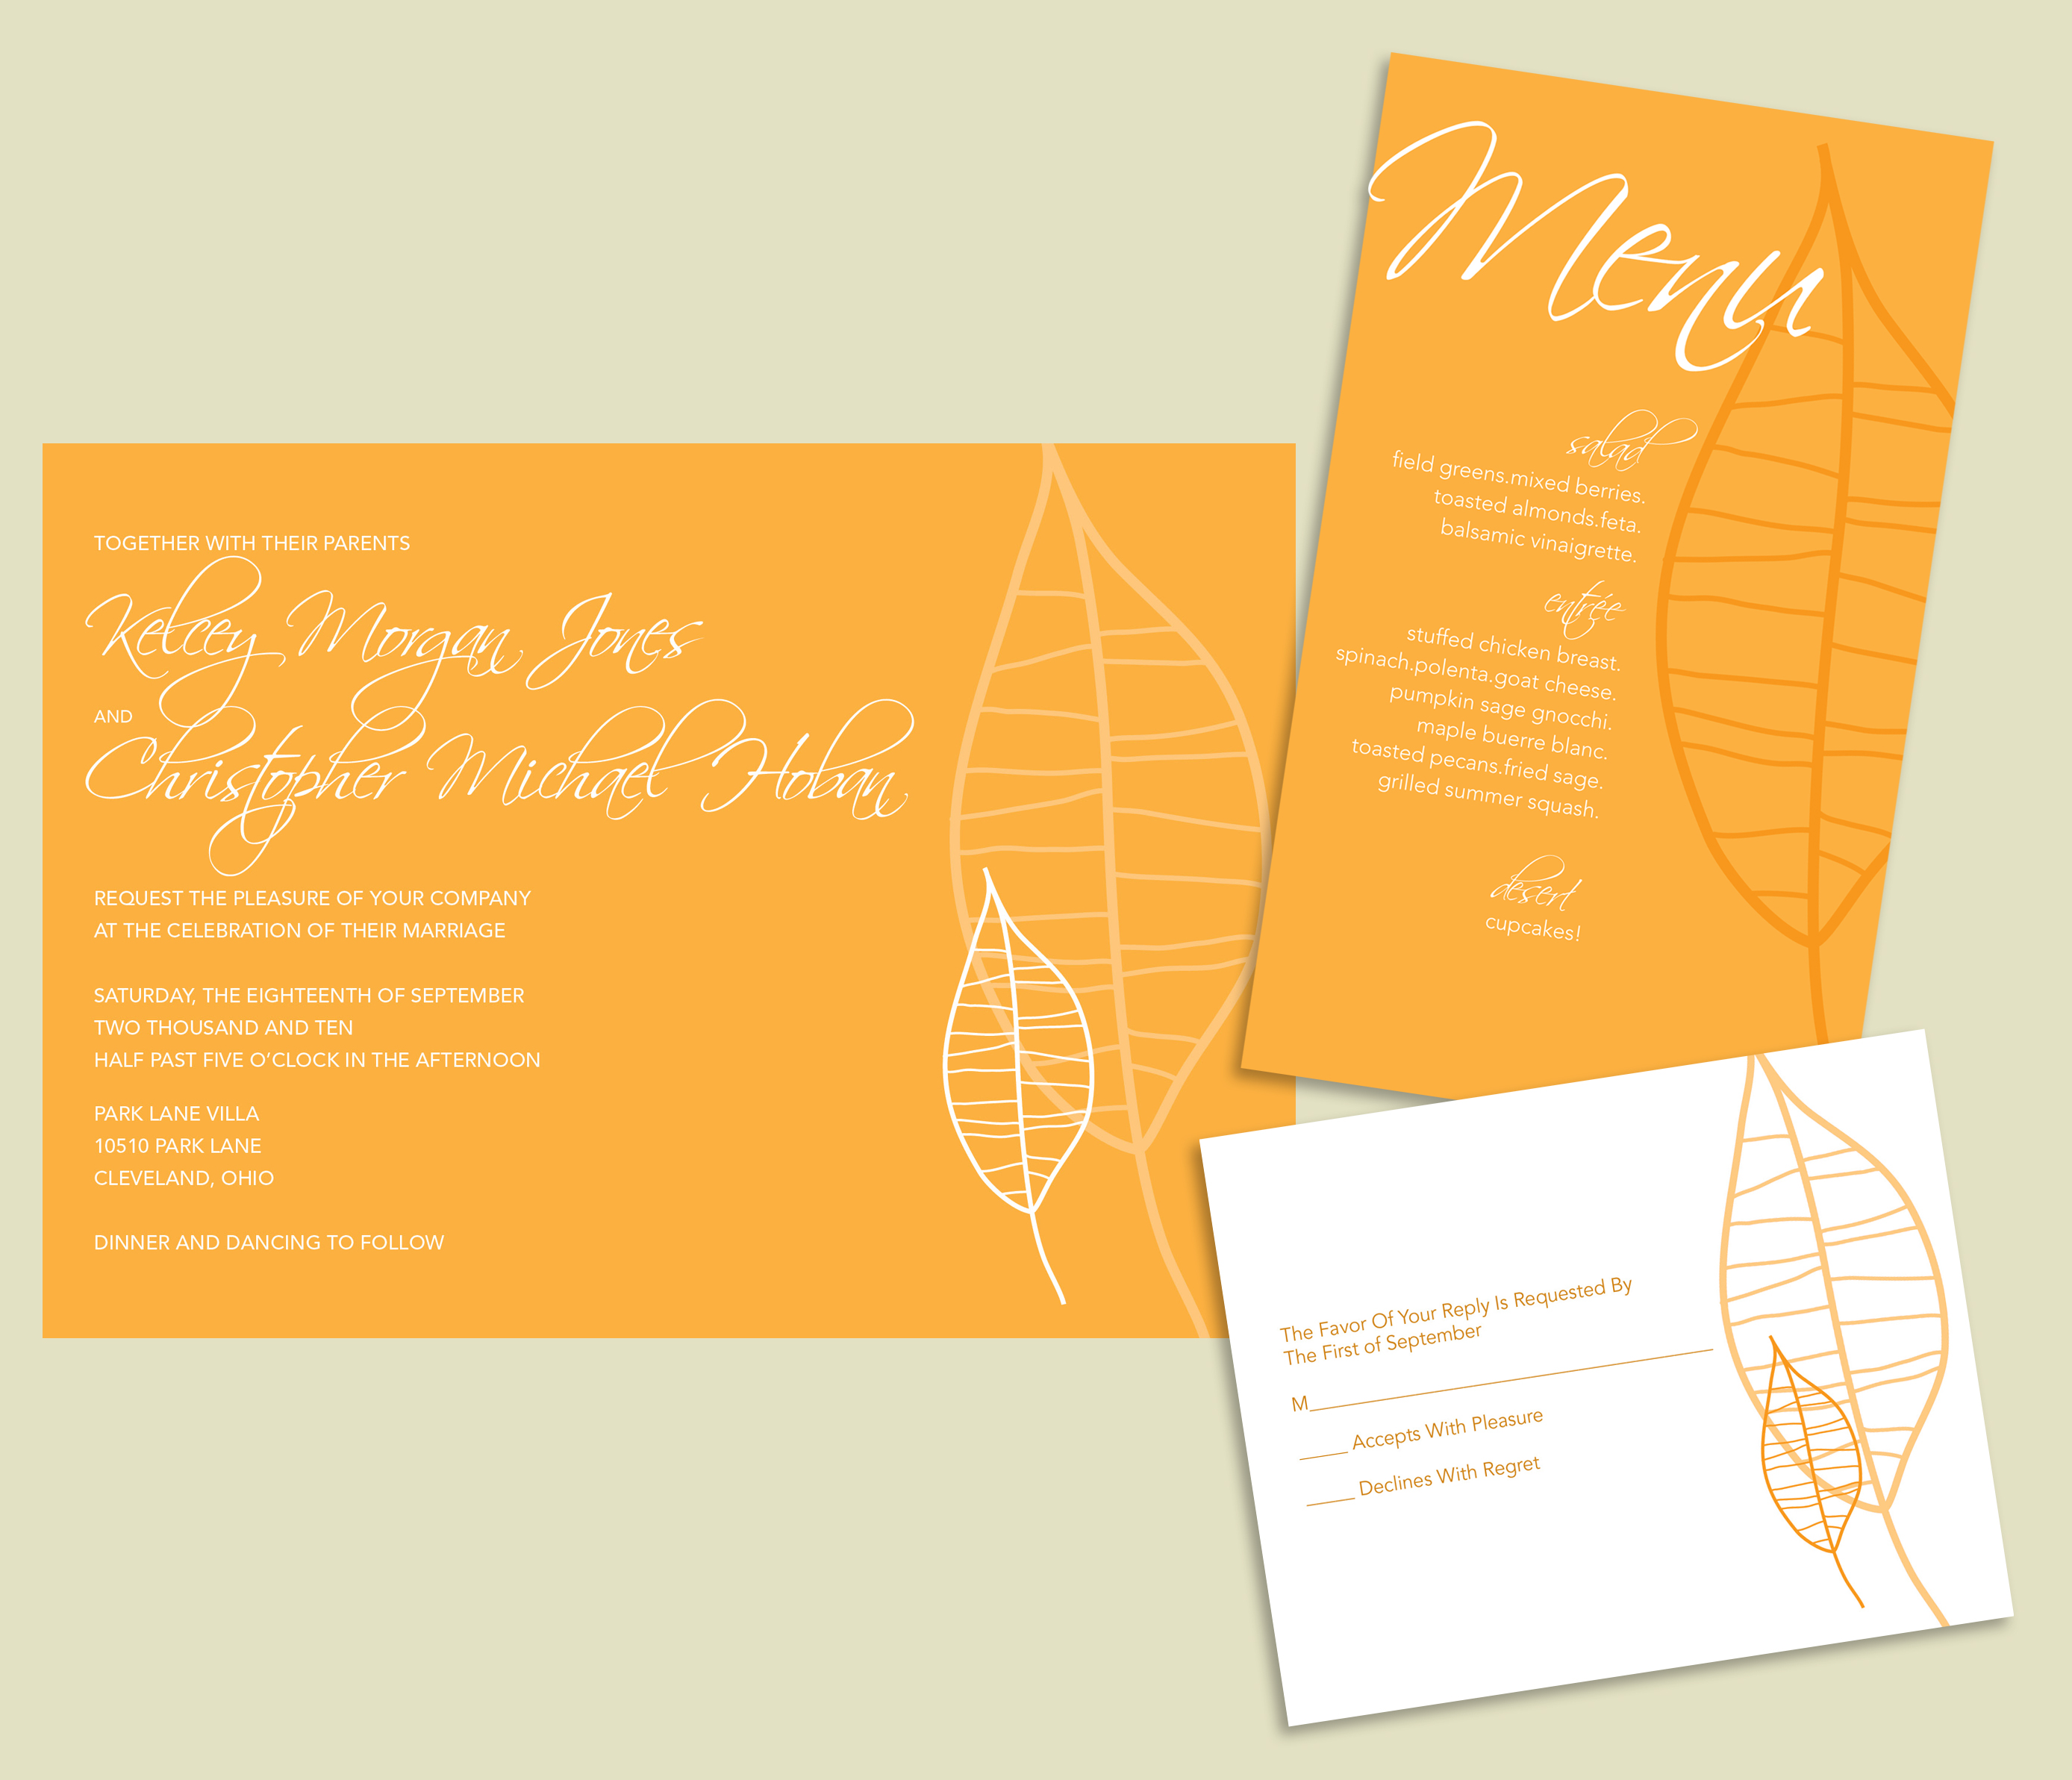 Wedding invitations on behance monicamarmolfo Image collections